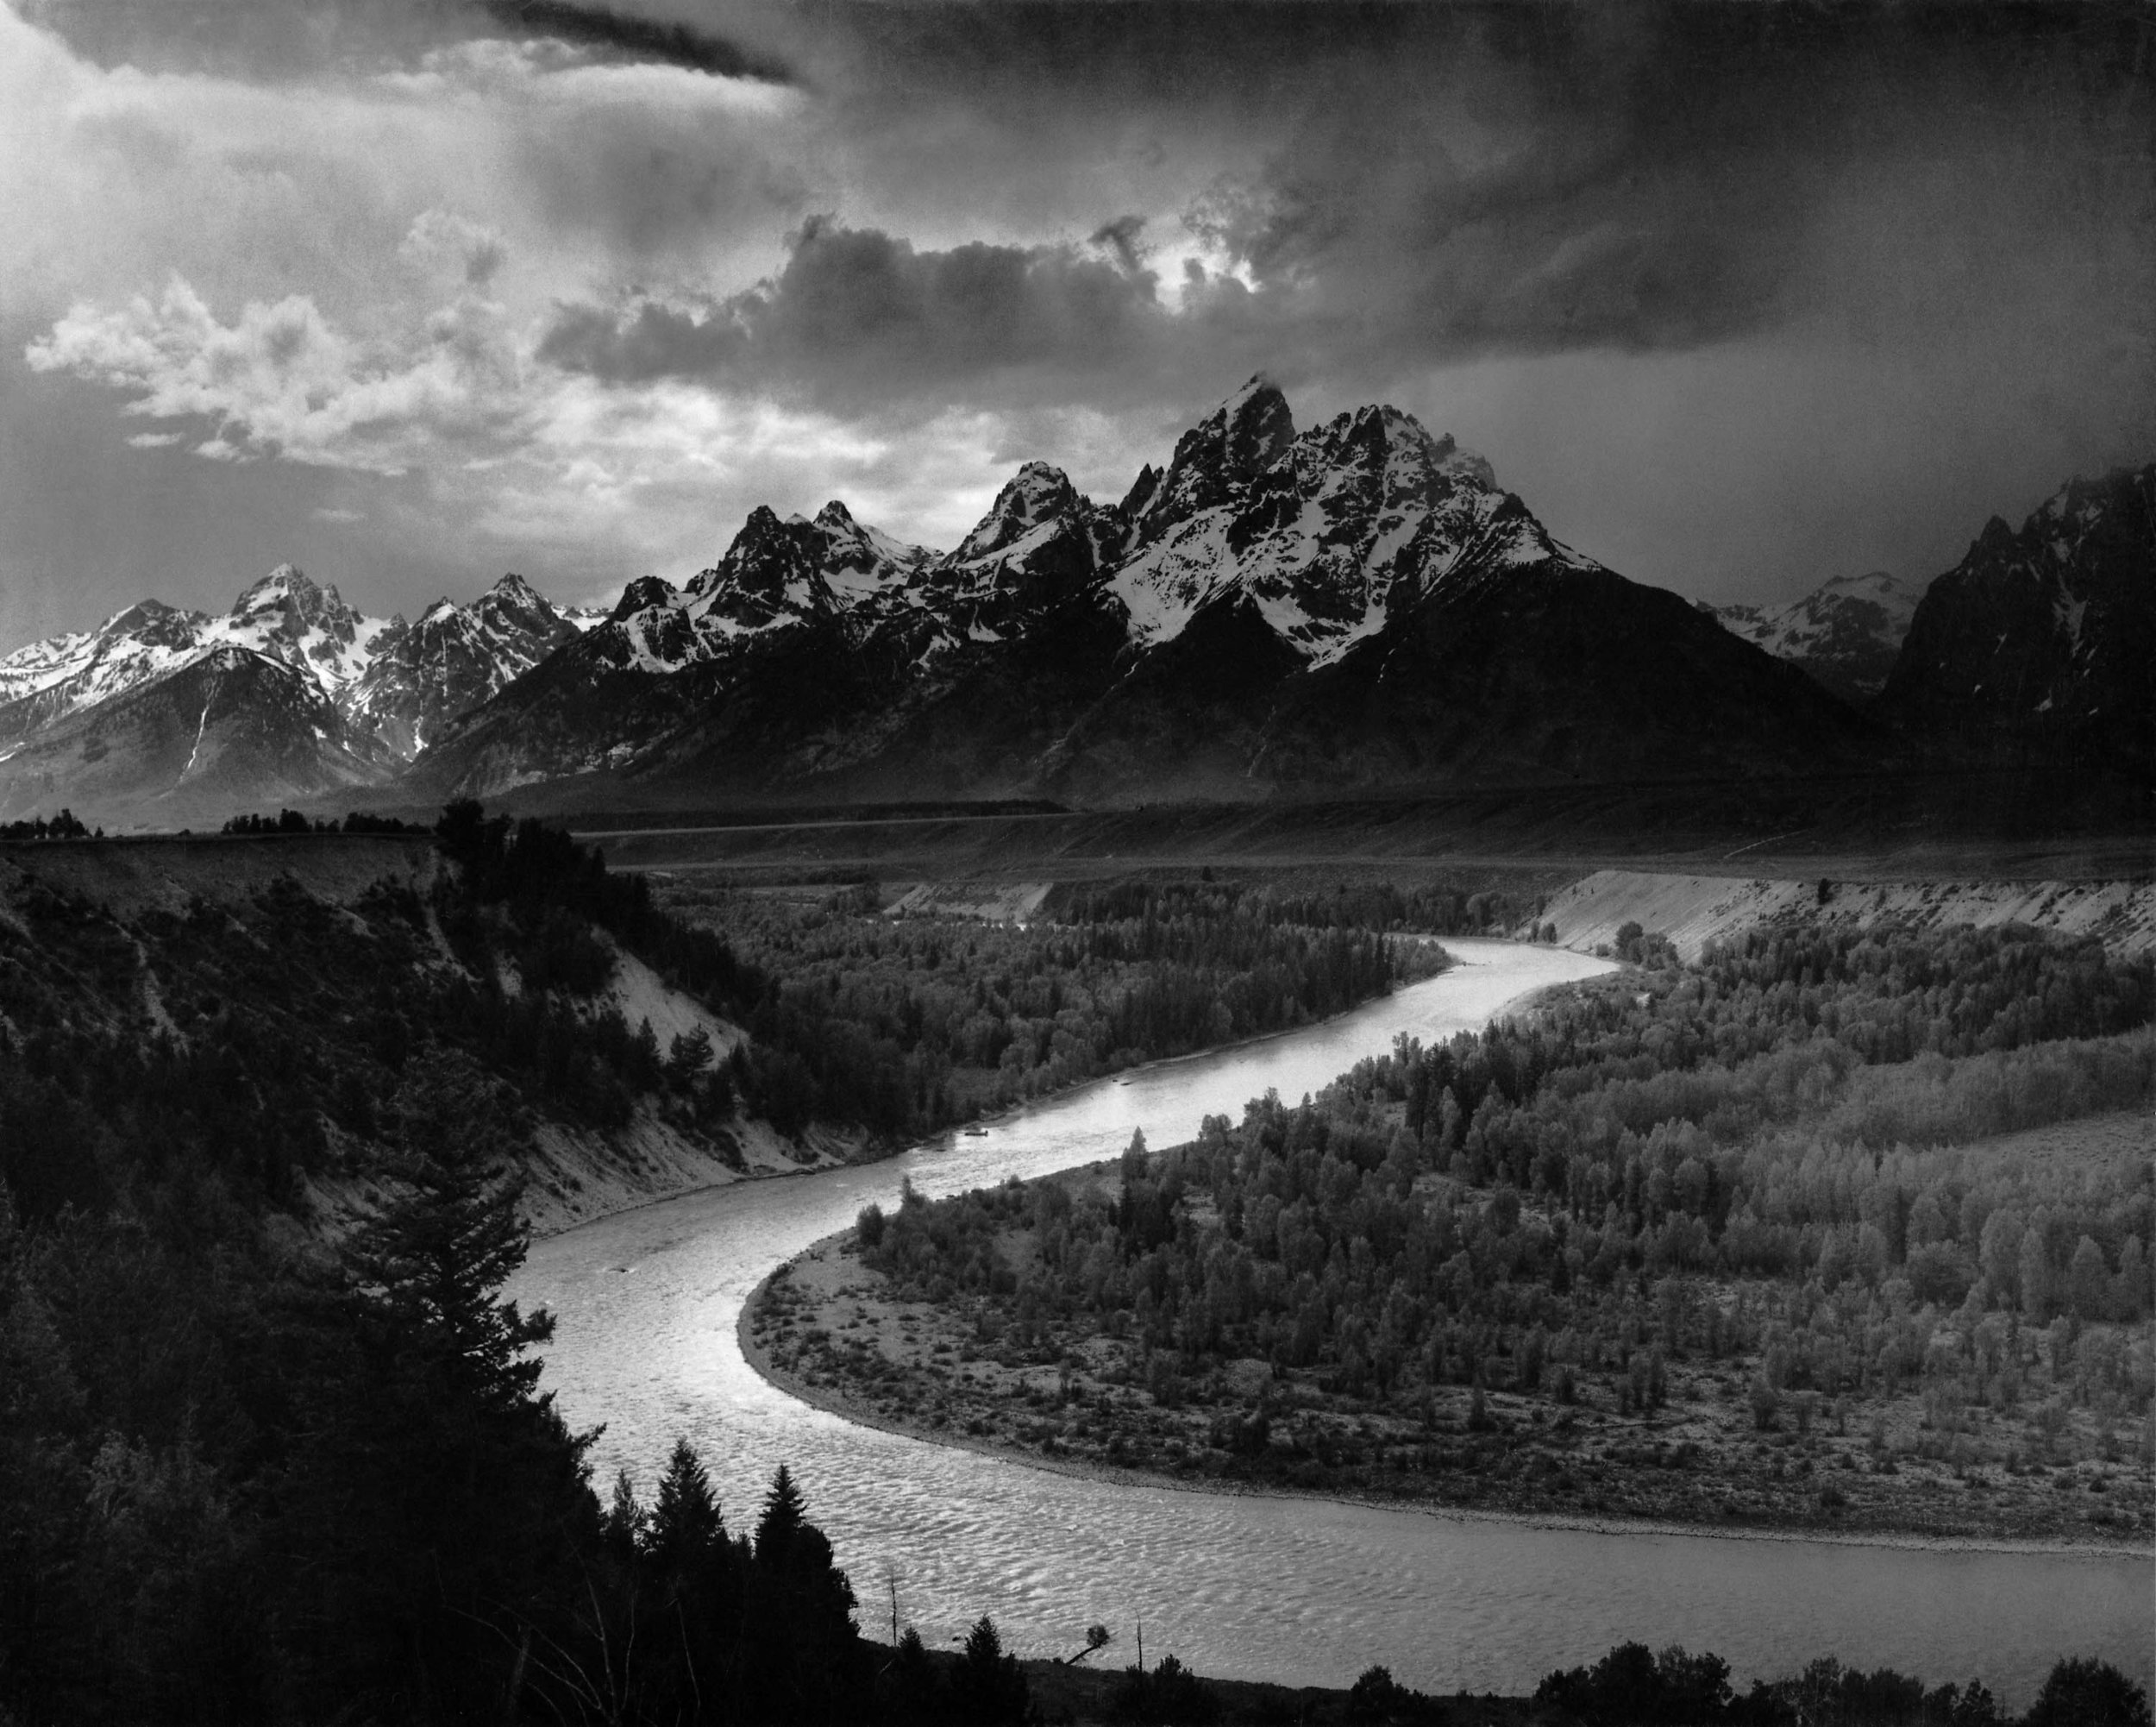 Ansel Adams- The Tetons and the Snake River.